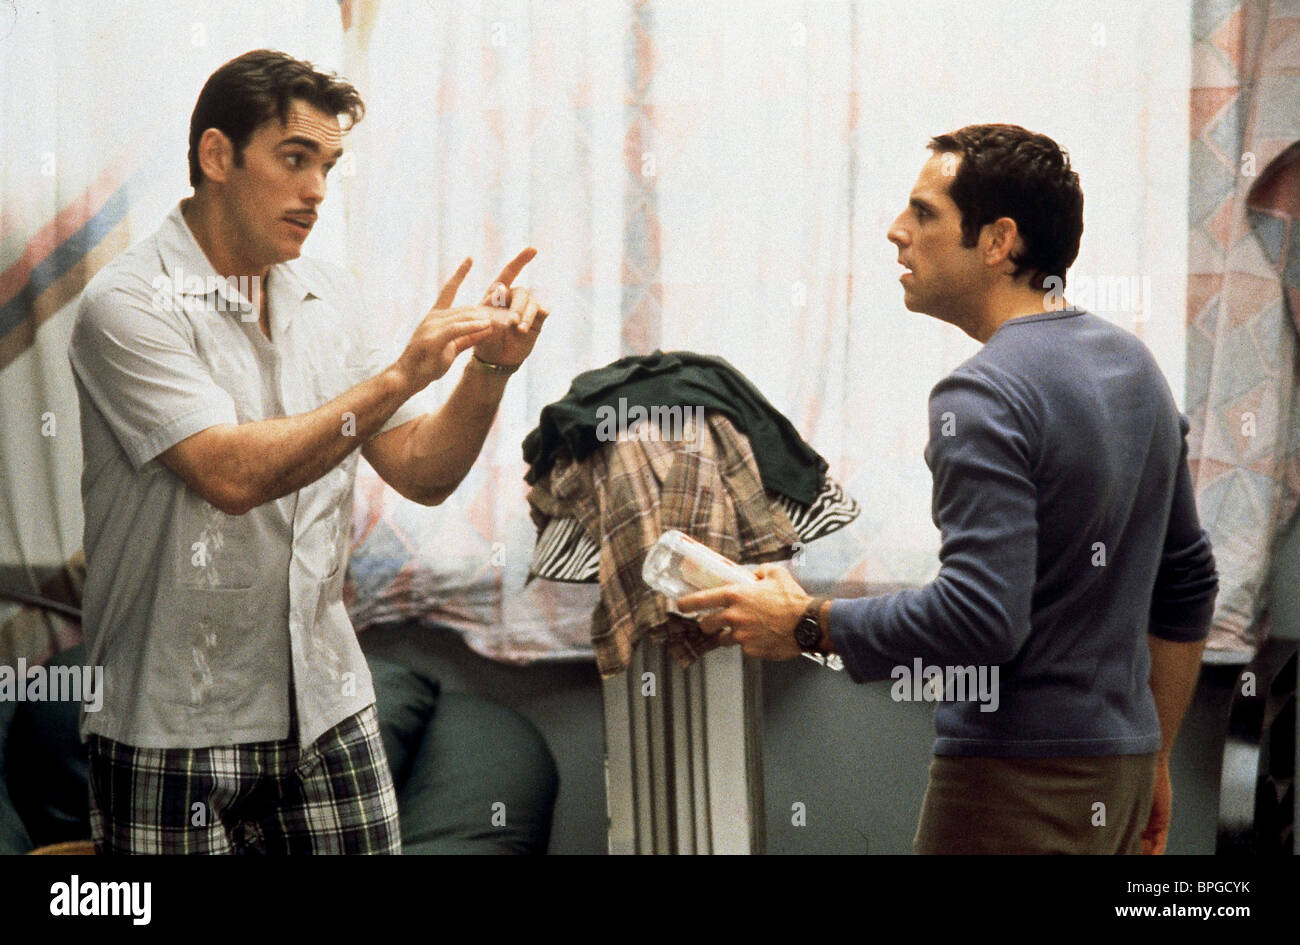 MATT DILLON, BEN STILLER, THERE'S SOMETHING ABOUT MARY, 1998 - Stock Image